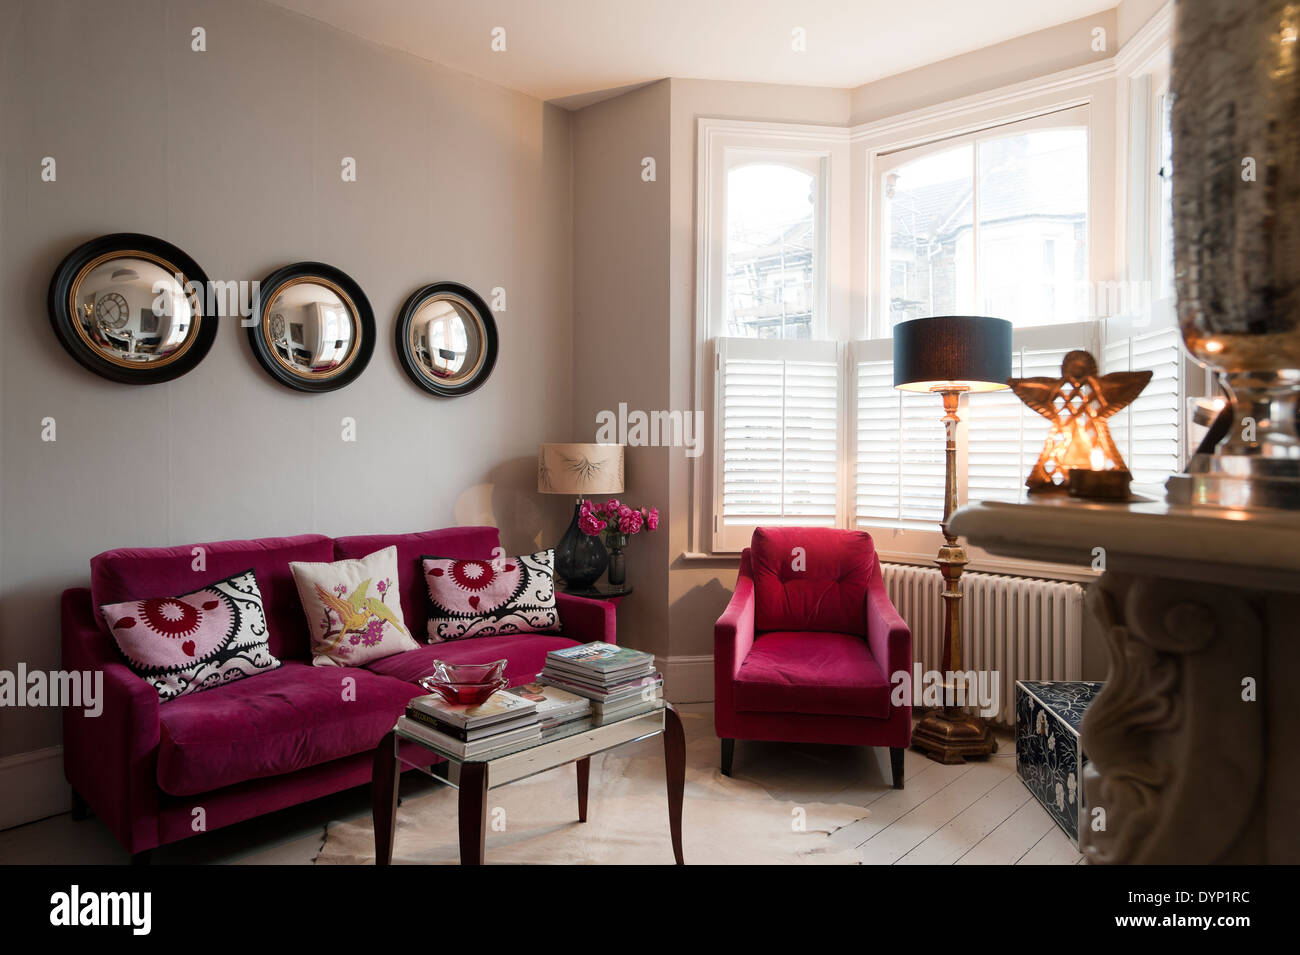 ... Raspberry Coloured Velvet Furniture In Living Room With Graham And  Green Porthole Wall Mirrors   Stock